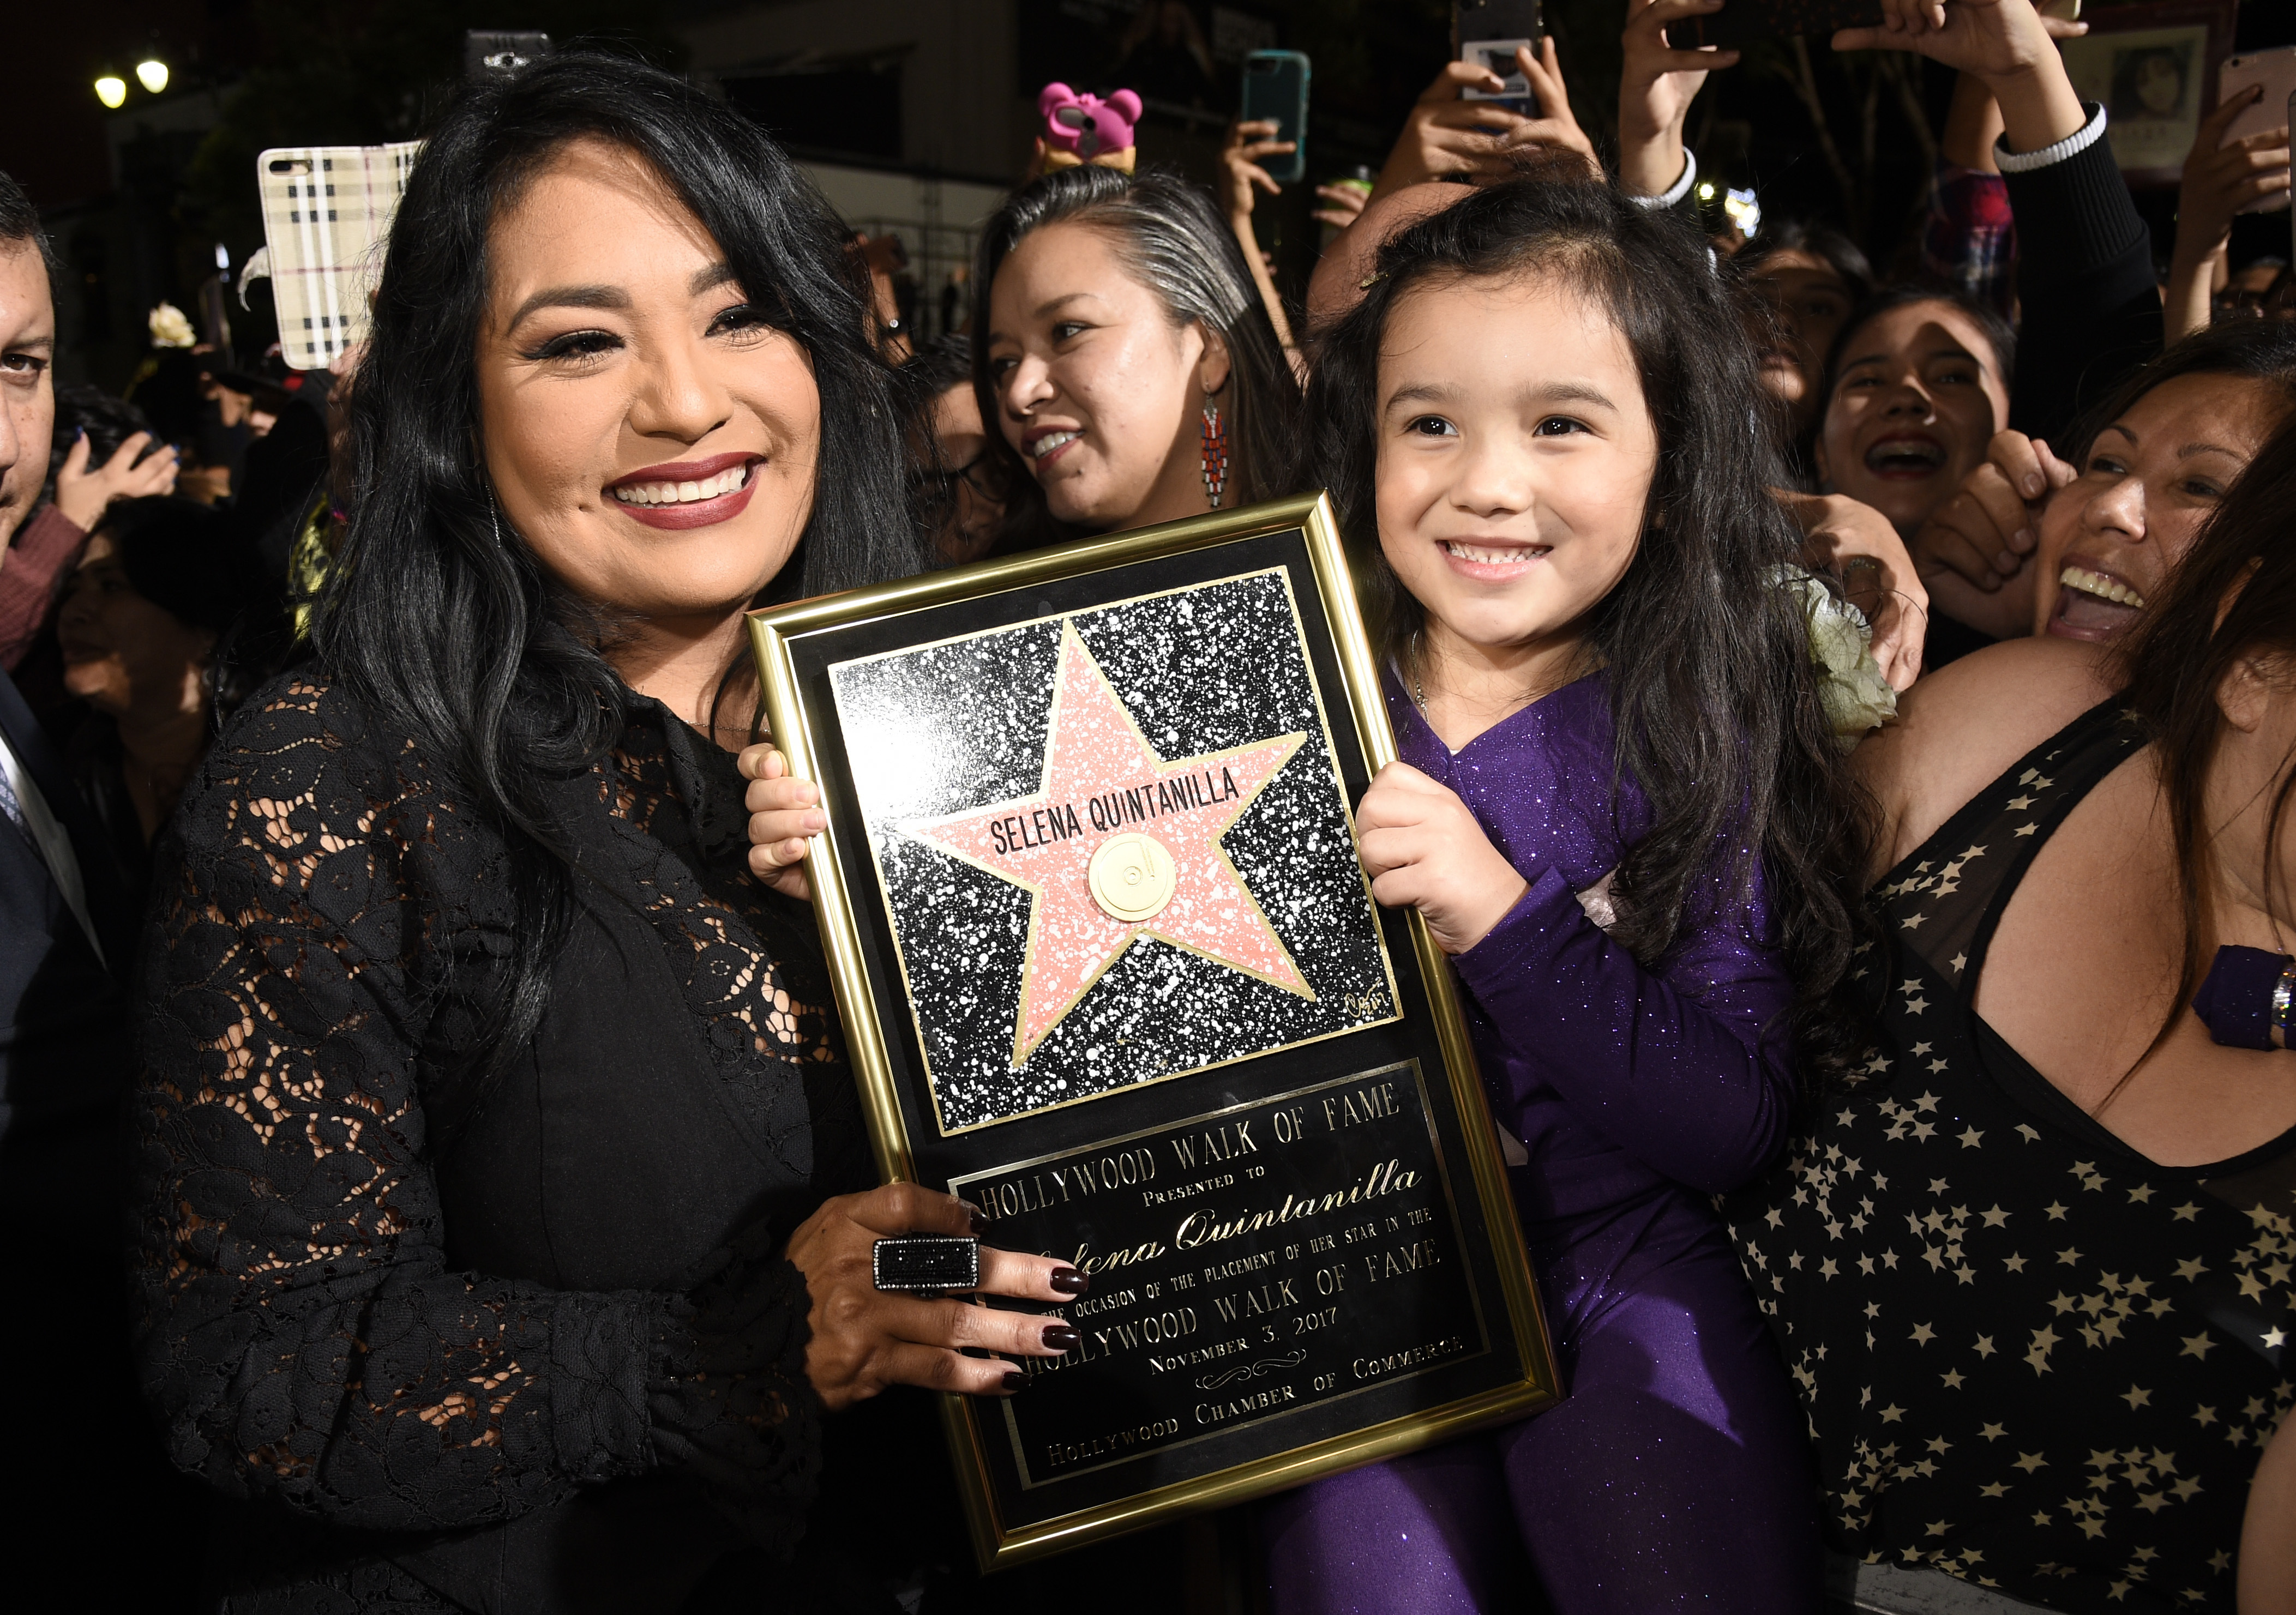 <div class='meta'><div class='origin-logo' data-origin='none'></div><span class='caption-text' data-credit='Chris Pizzello/Invision/AP'>Suzette Quintanilla, left, holds a replica of her sister Selena's star on the Hollywood Walk of Fame as she poses with young fan Sammi Corona-Lampa, 4, of Moreno Valley, Calif.</span></div>